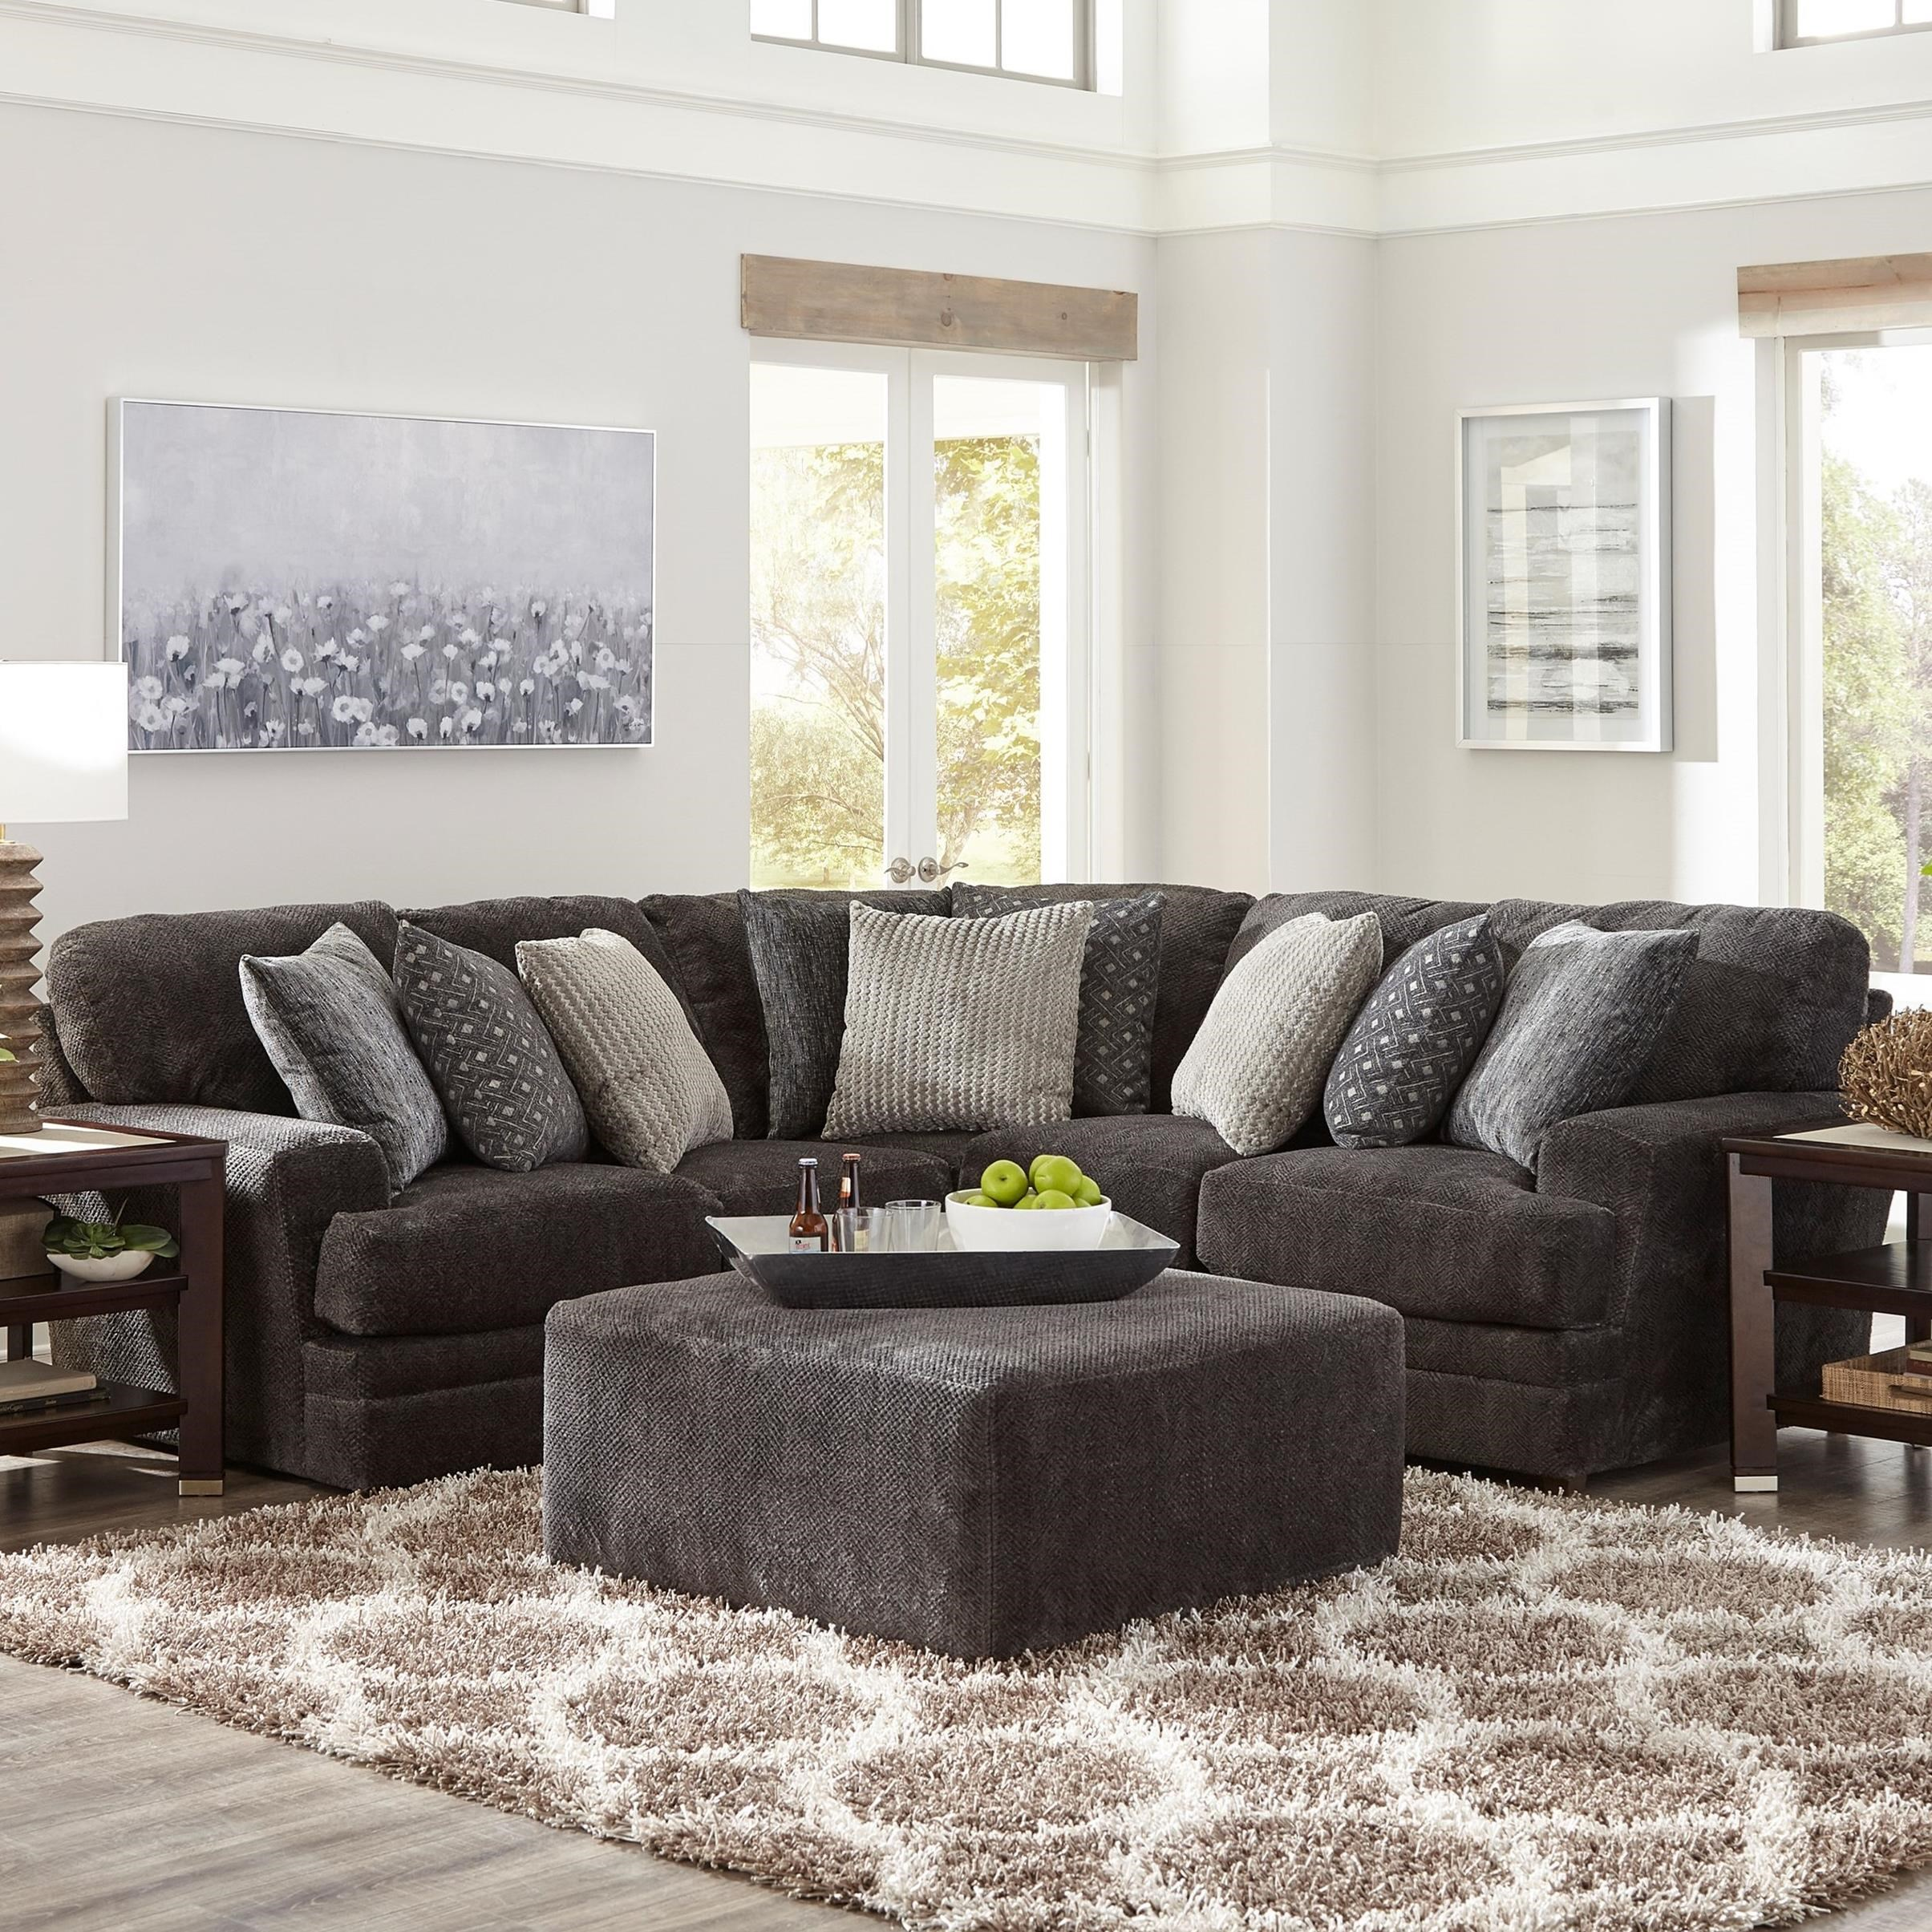 Mammoth Stationary Living Room Group by Jackson Furniture at EFO Furniture Outlet